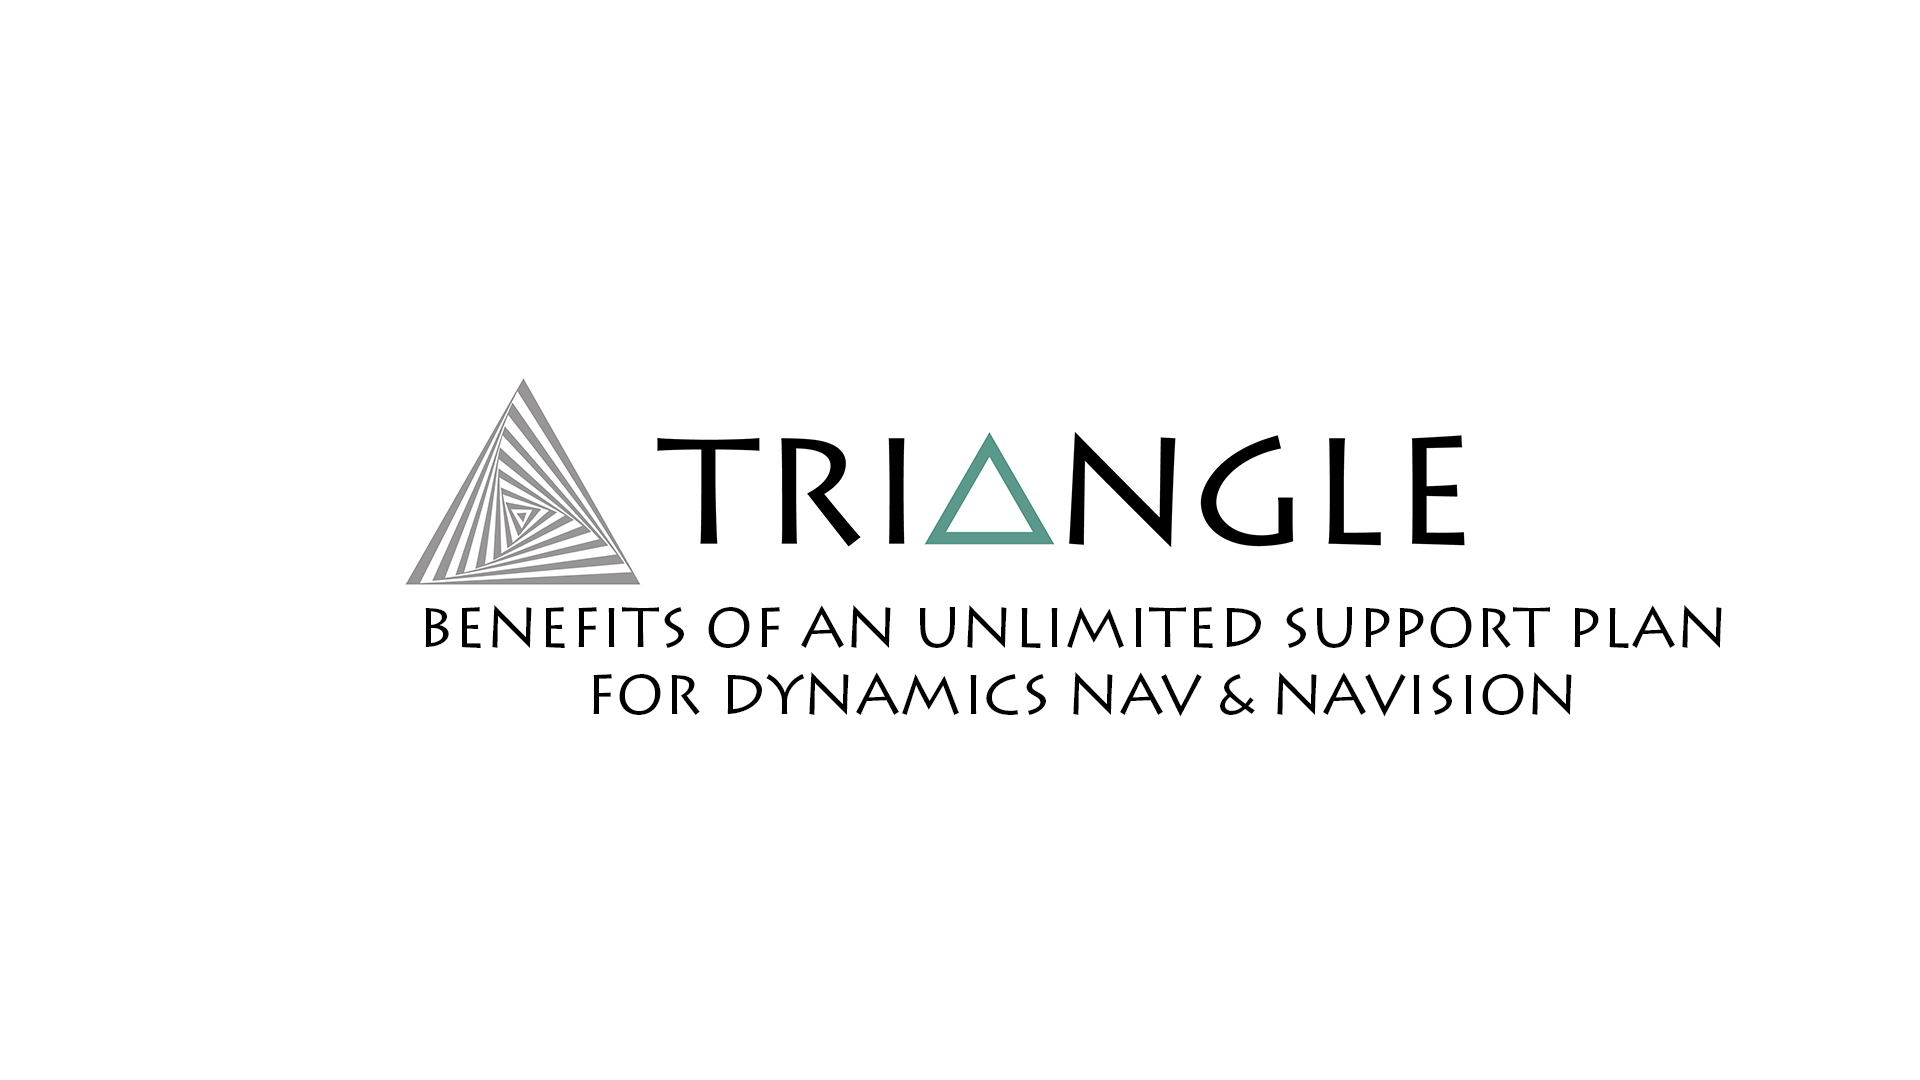 Benefits of an unlimited support plan for Dynamics NAV & Navision